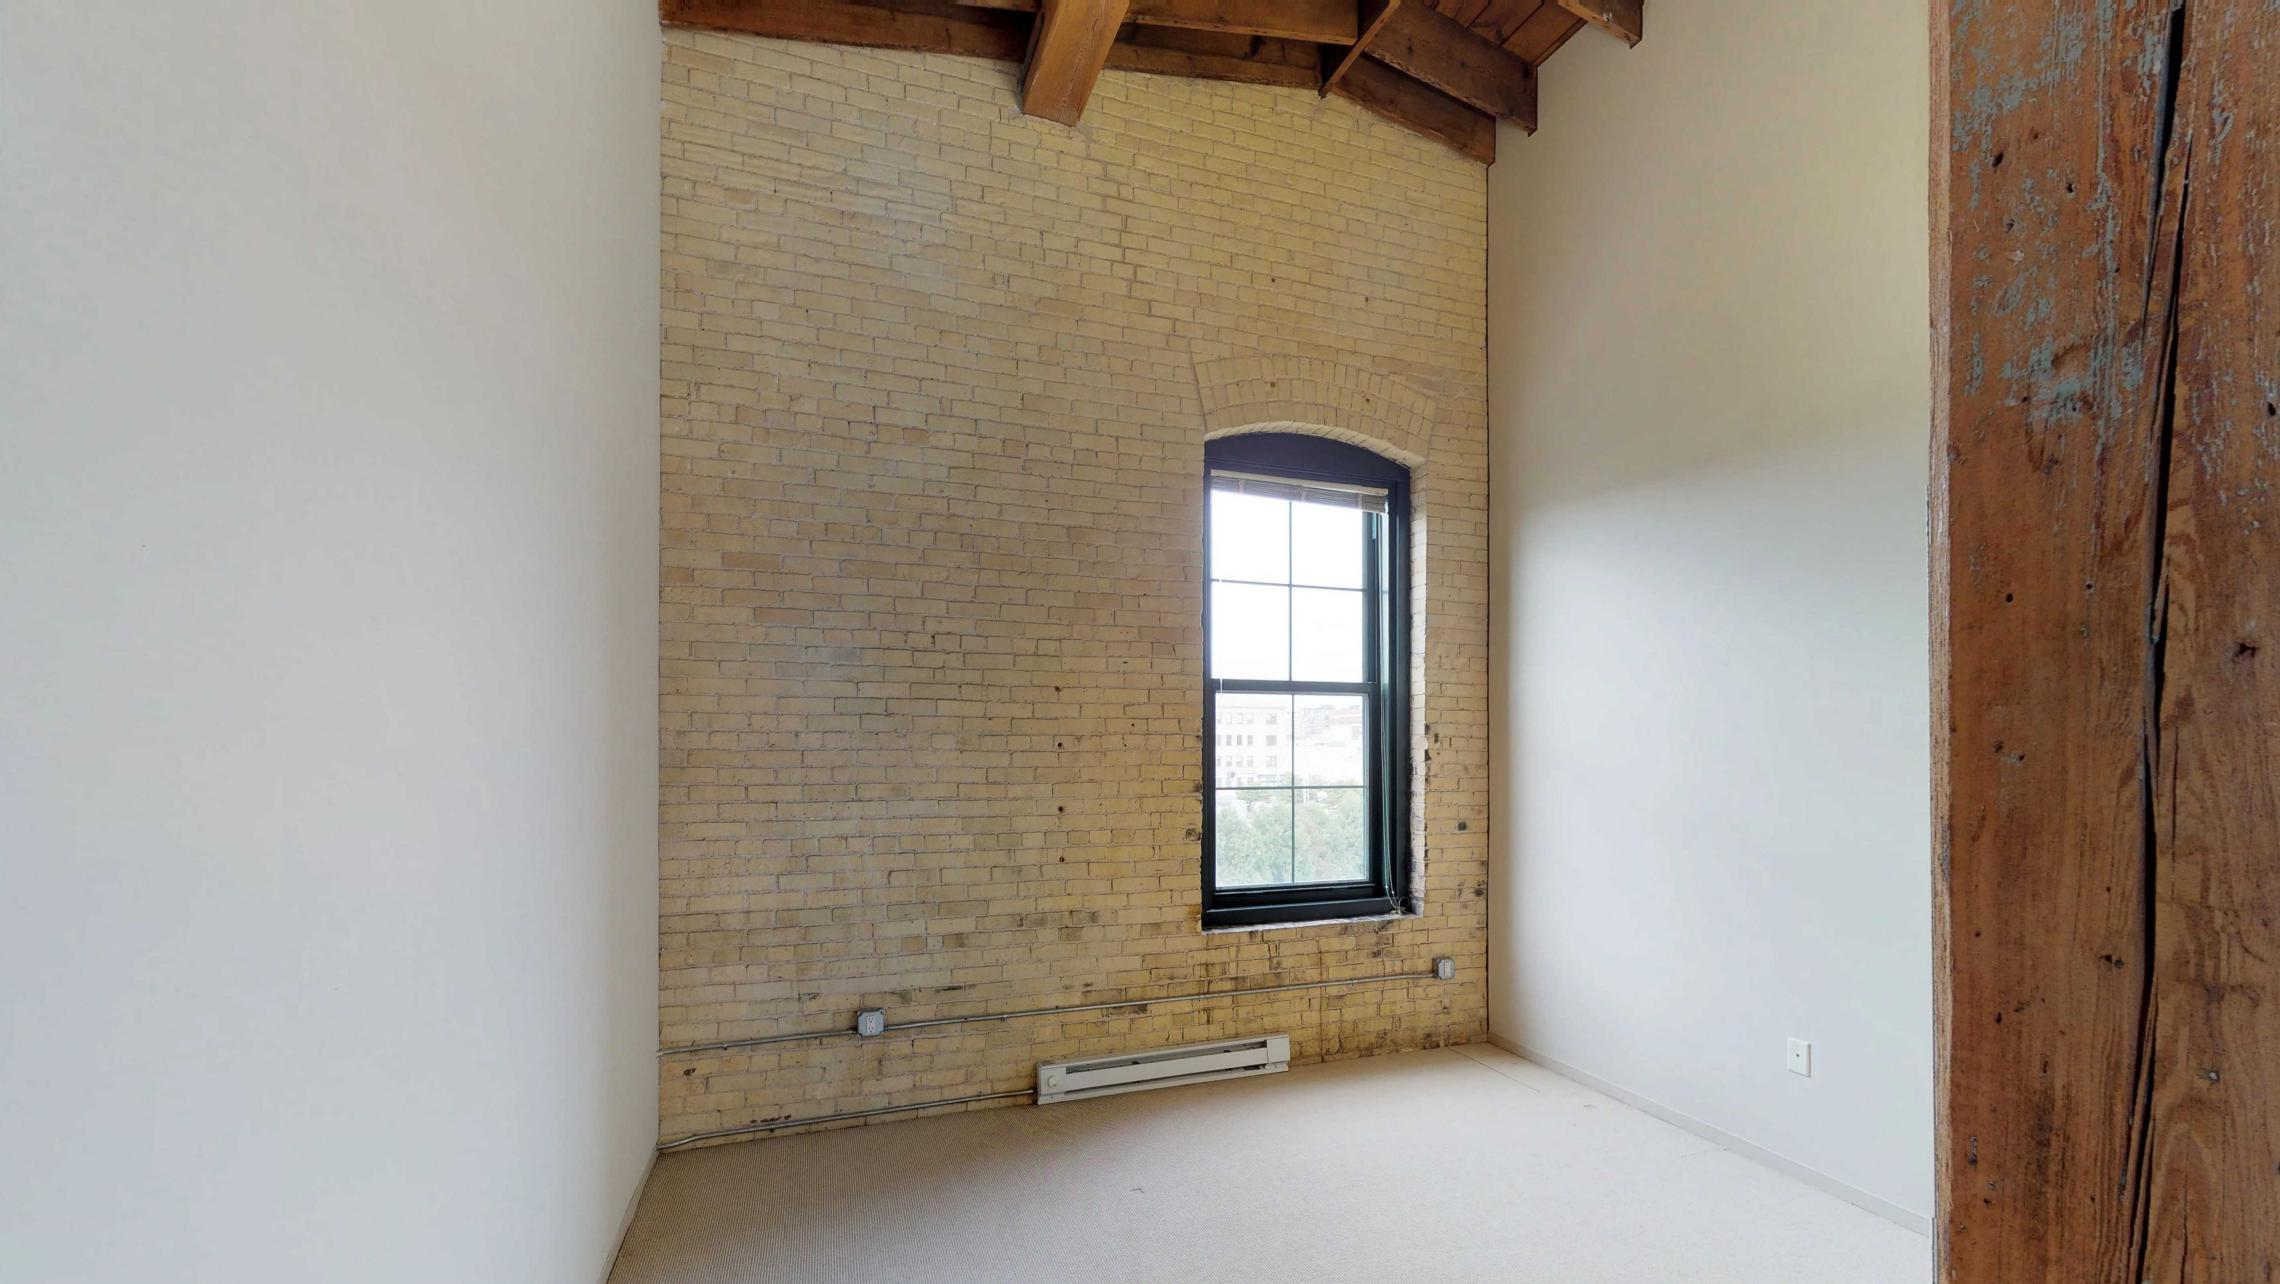 Tobacco-Lofts-Two-Bedroom-Corner-Apartment-E312-Downtown-Madison-Design-Exposures-Yards-Historic-Brick.jpg